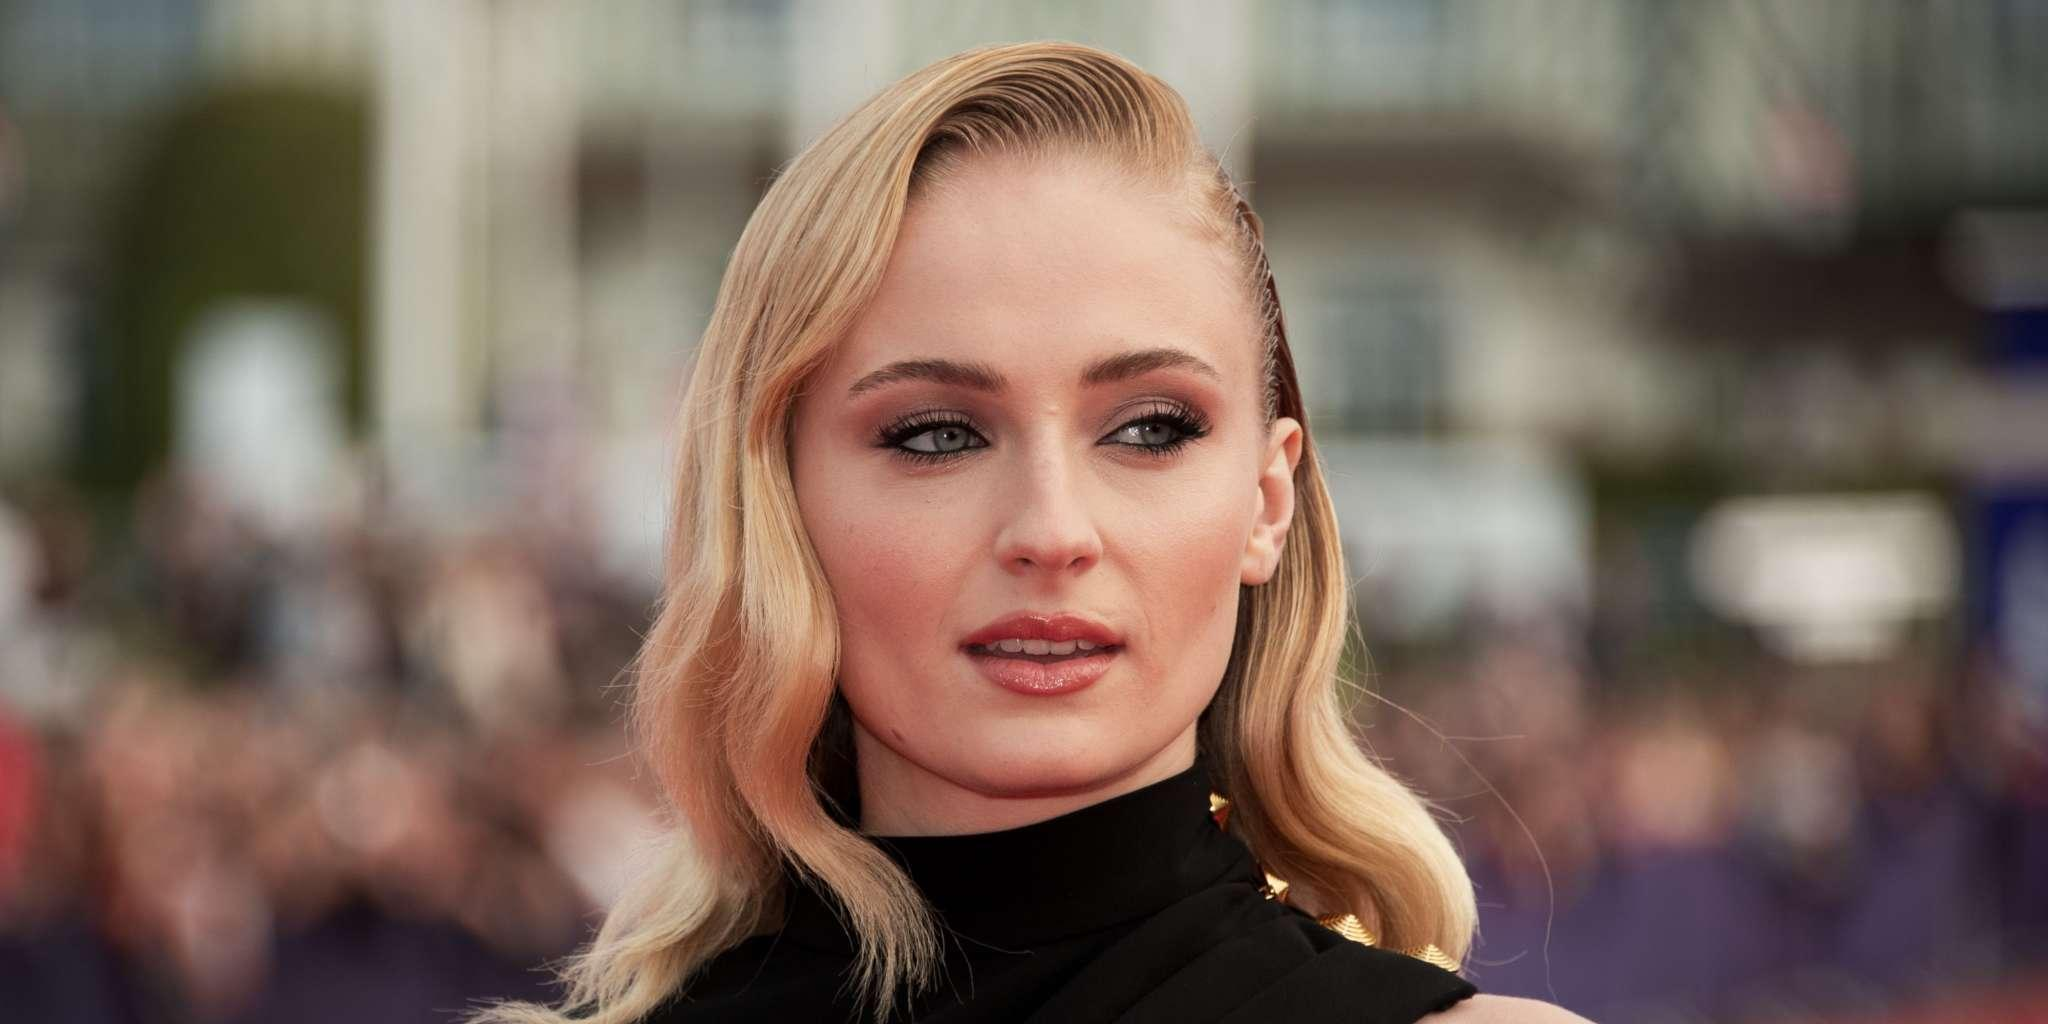 Sophie Turner Claps Back At Commenter Arguing George Floyd Has Received Justice So The Protests Are Not Needed Anymore